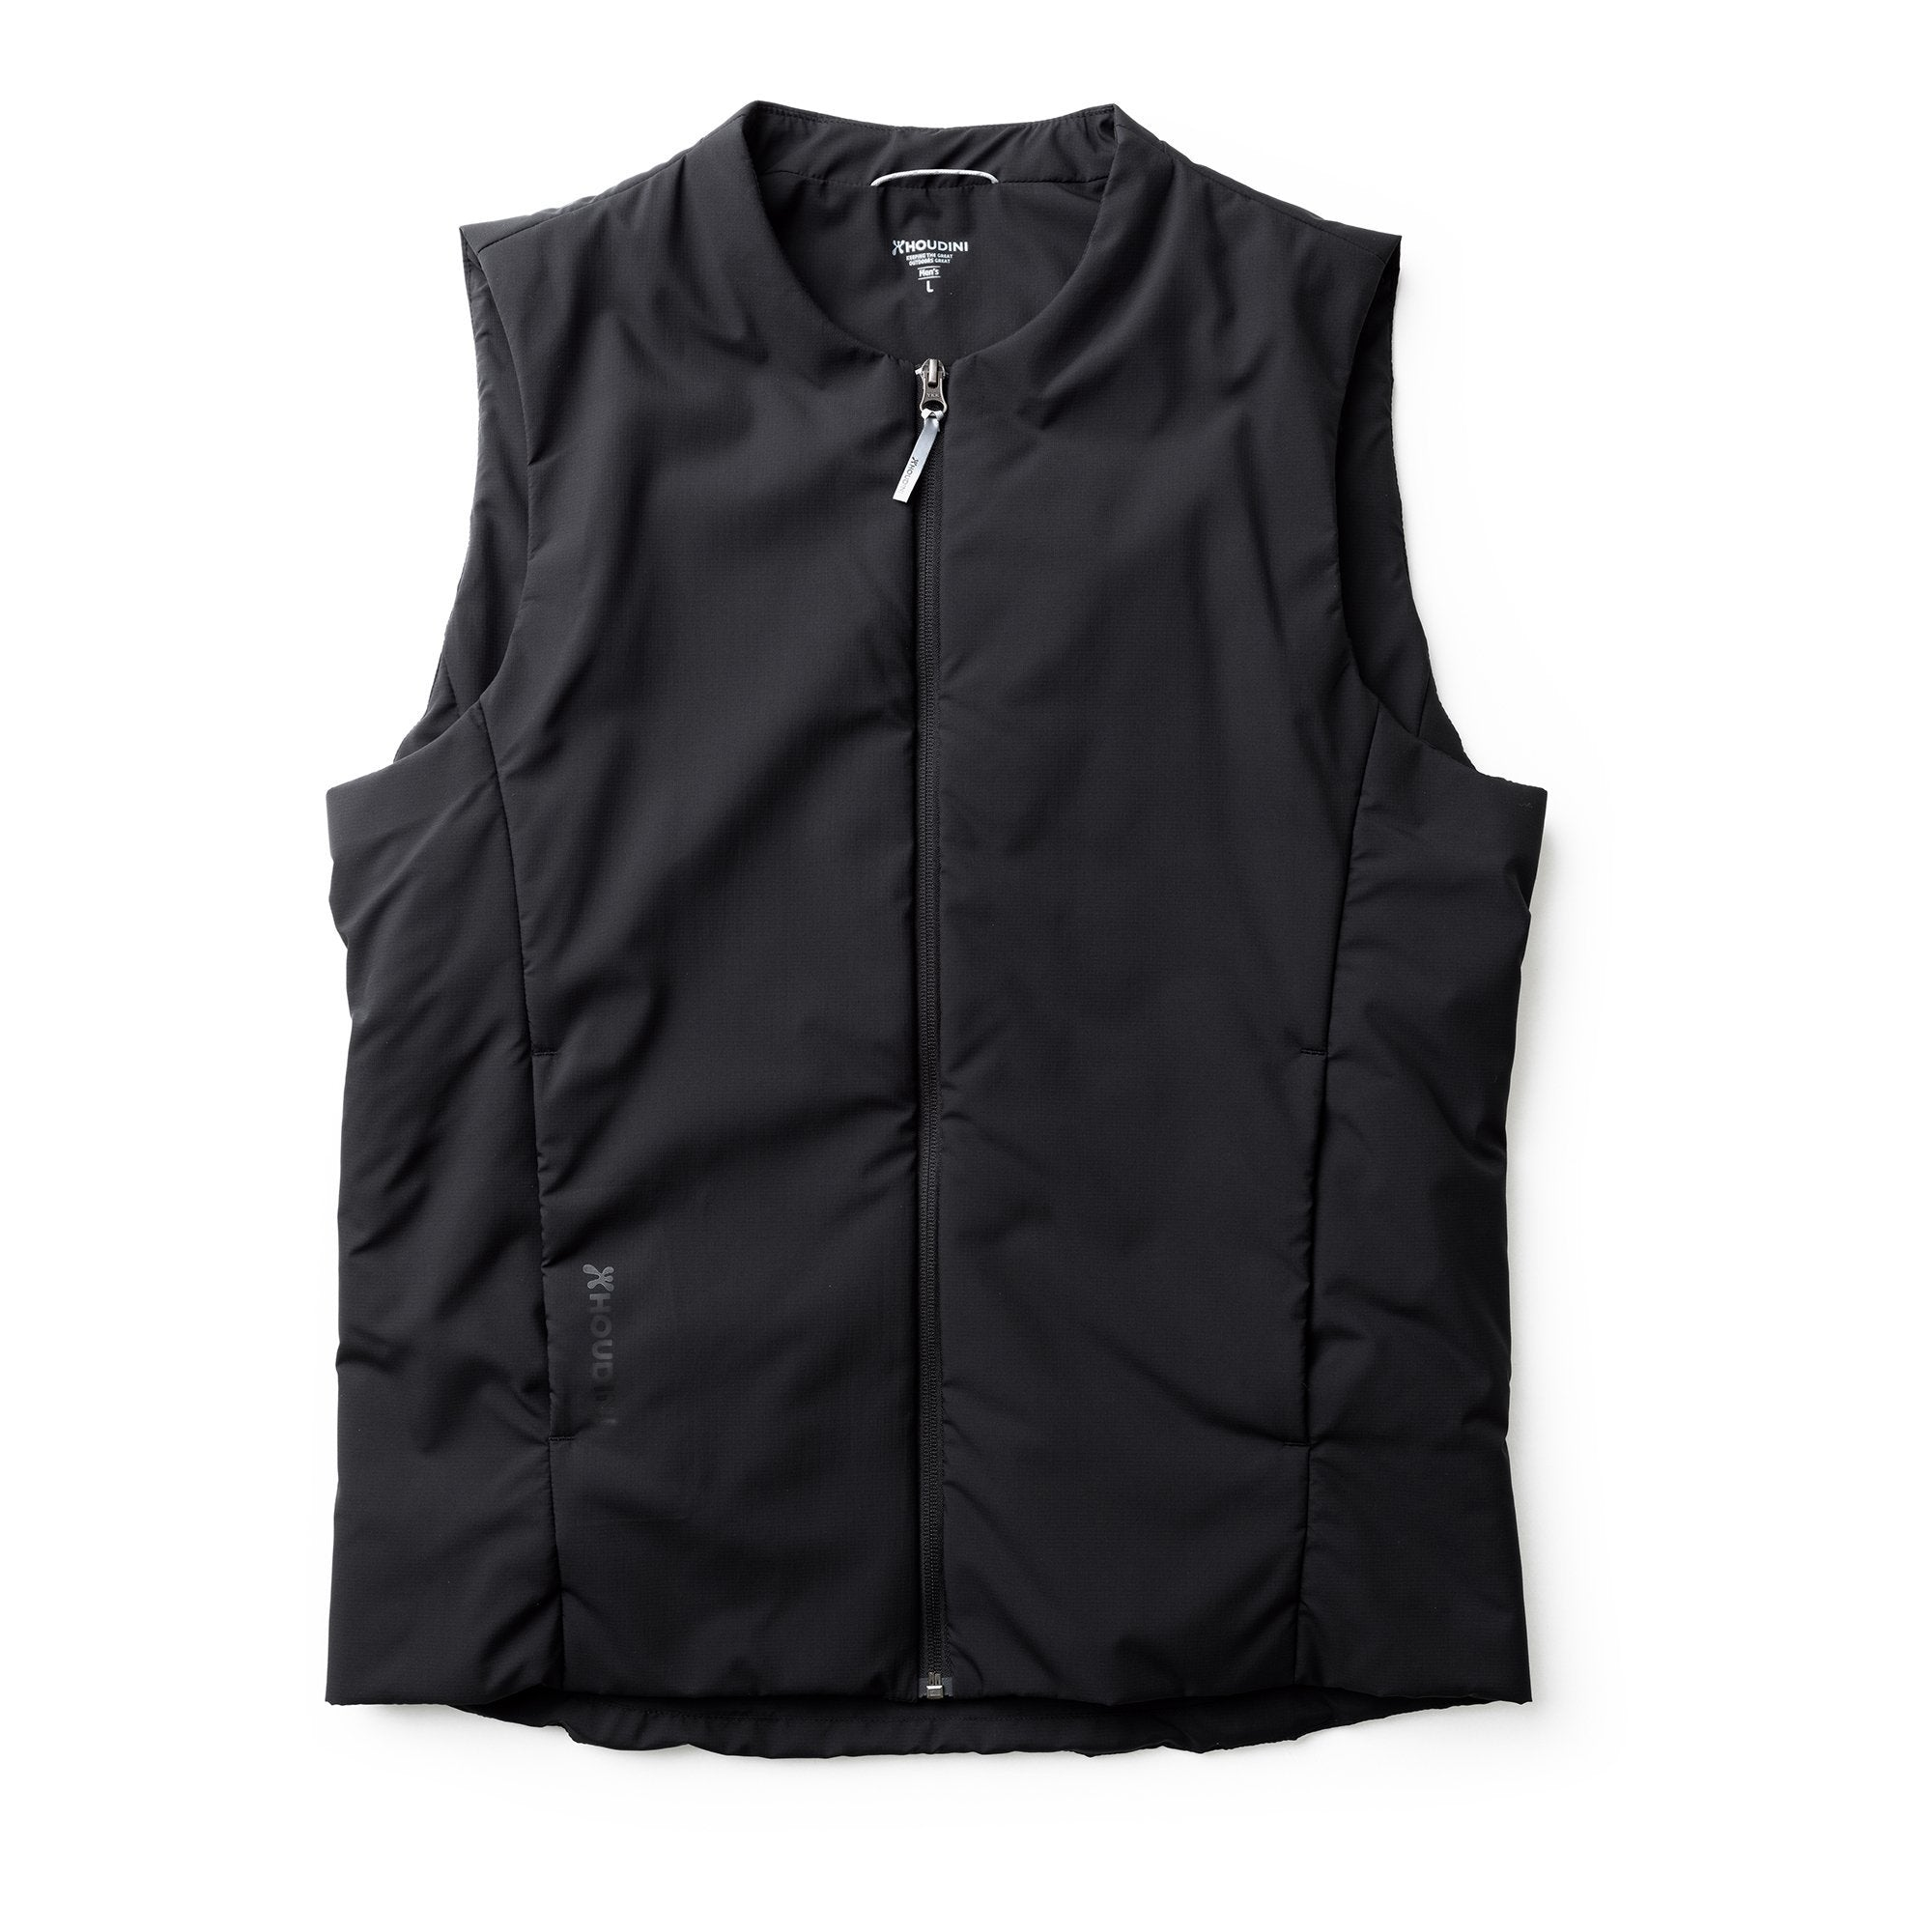 Venture Vest - True Black - Herr - Vindpinad